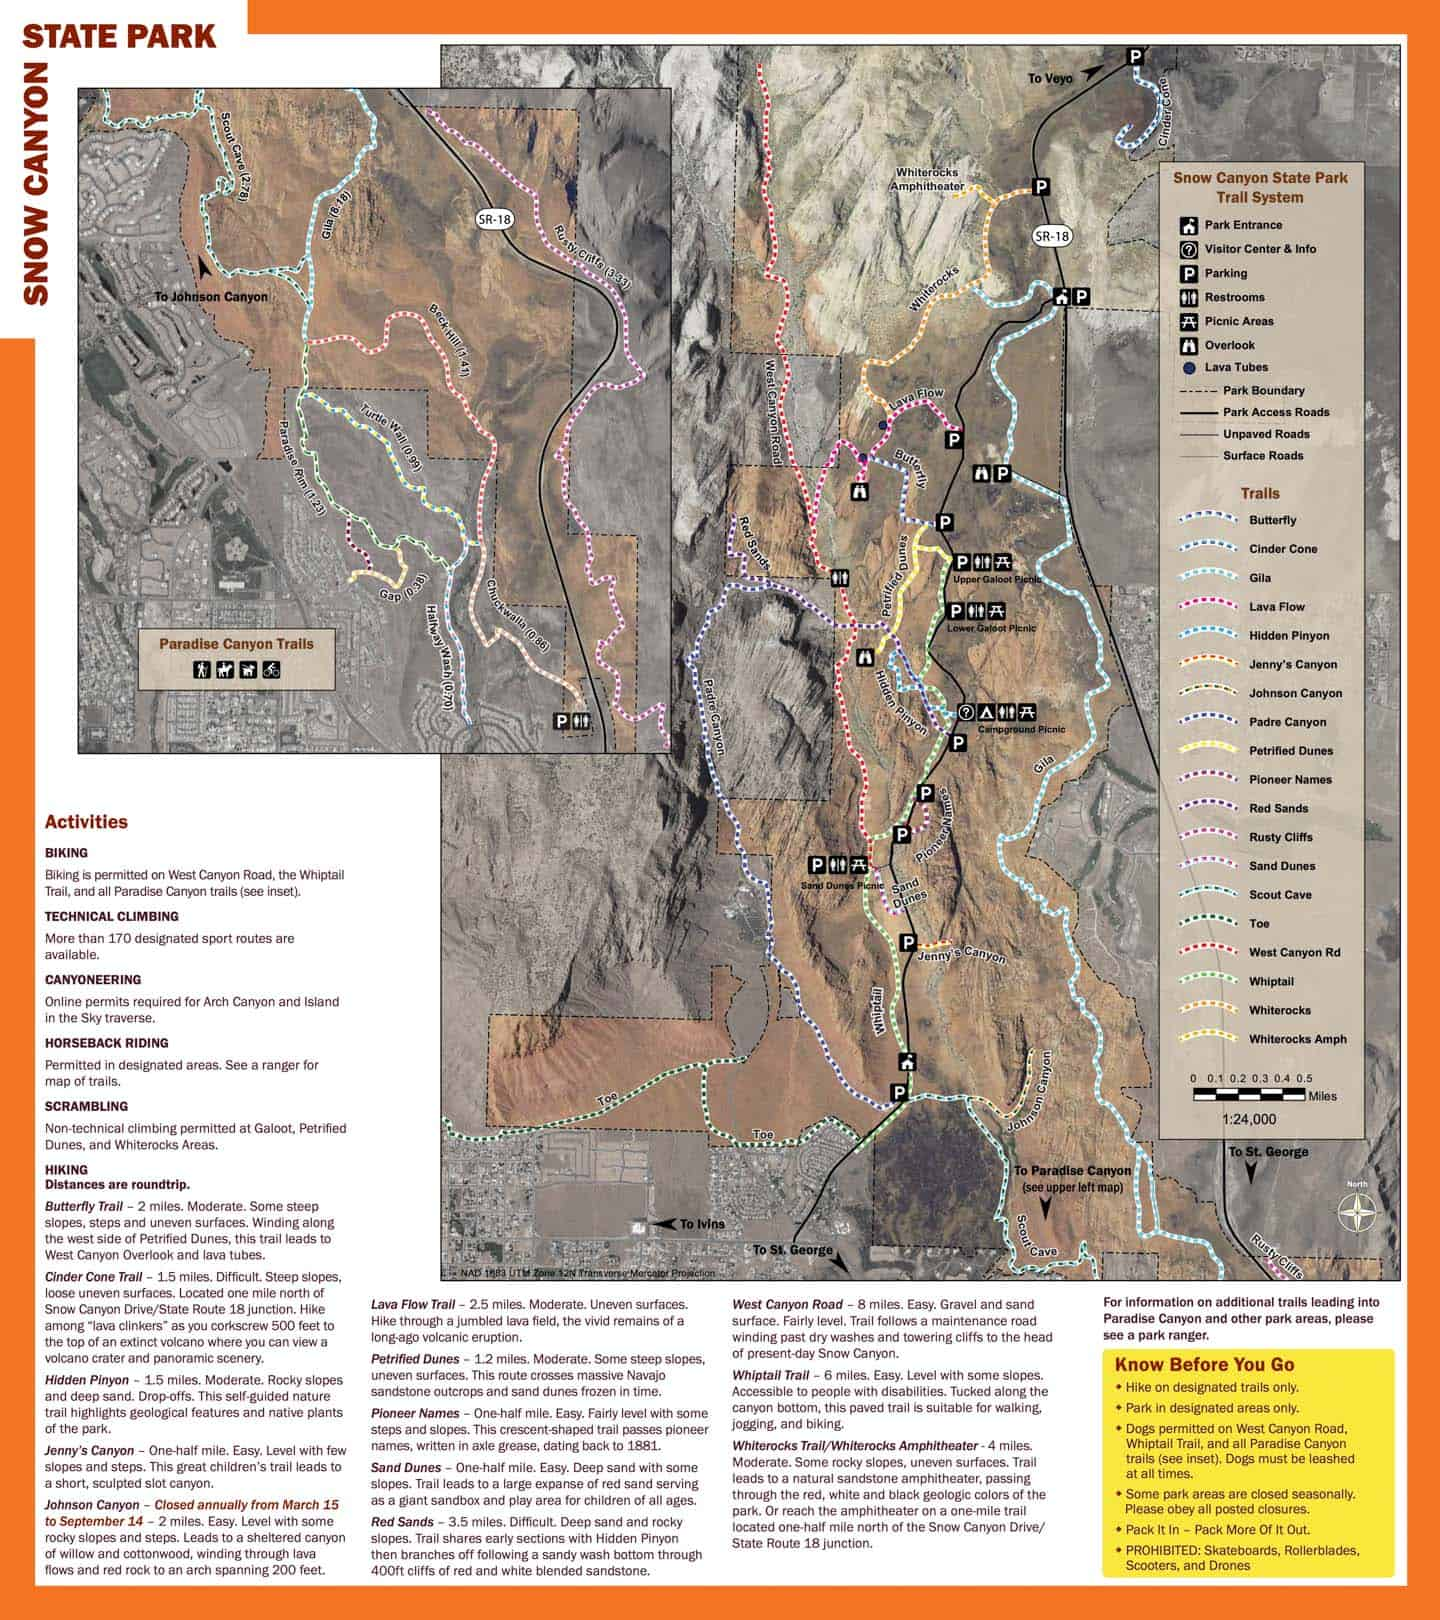 Snow Canyon State Park trail map